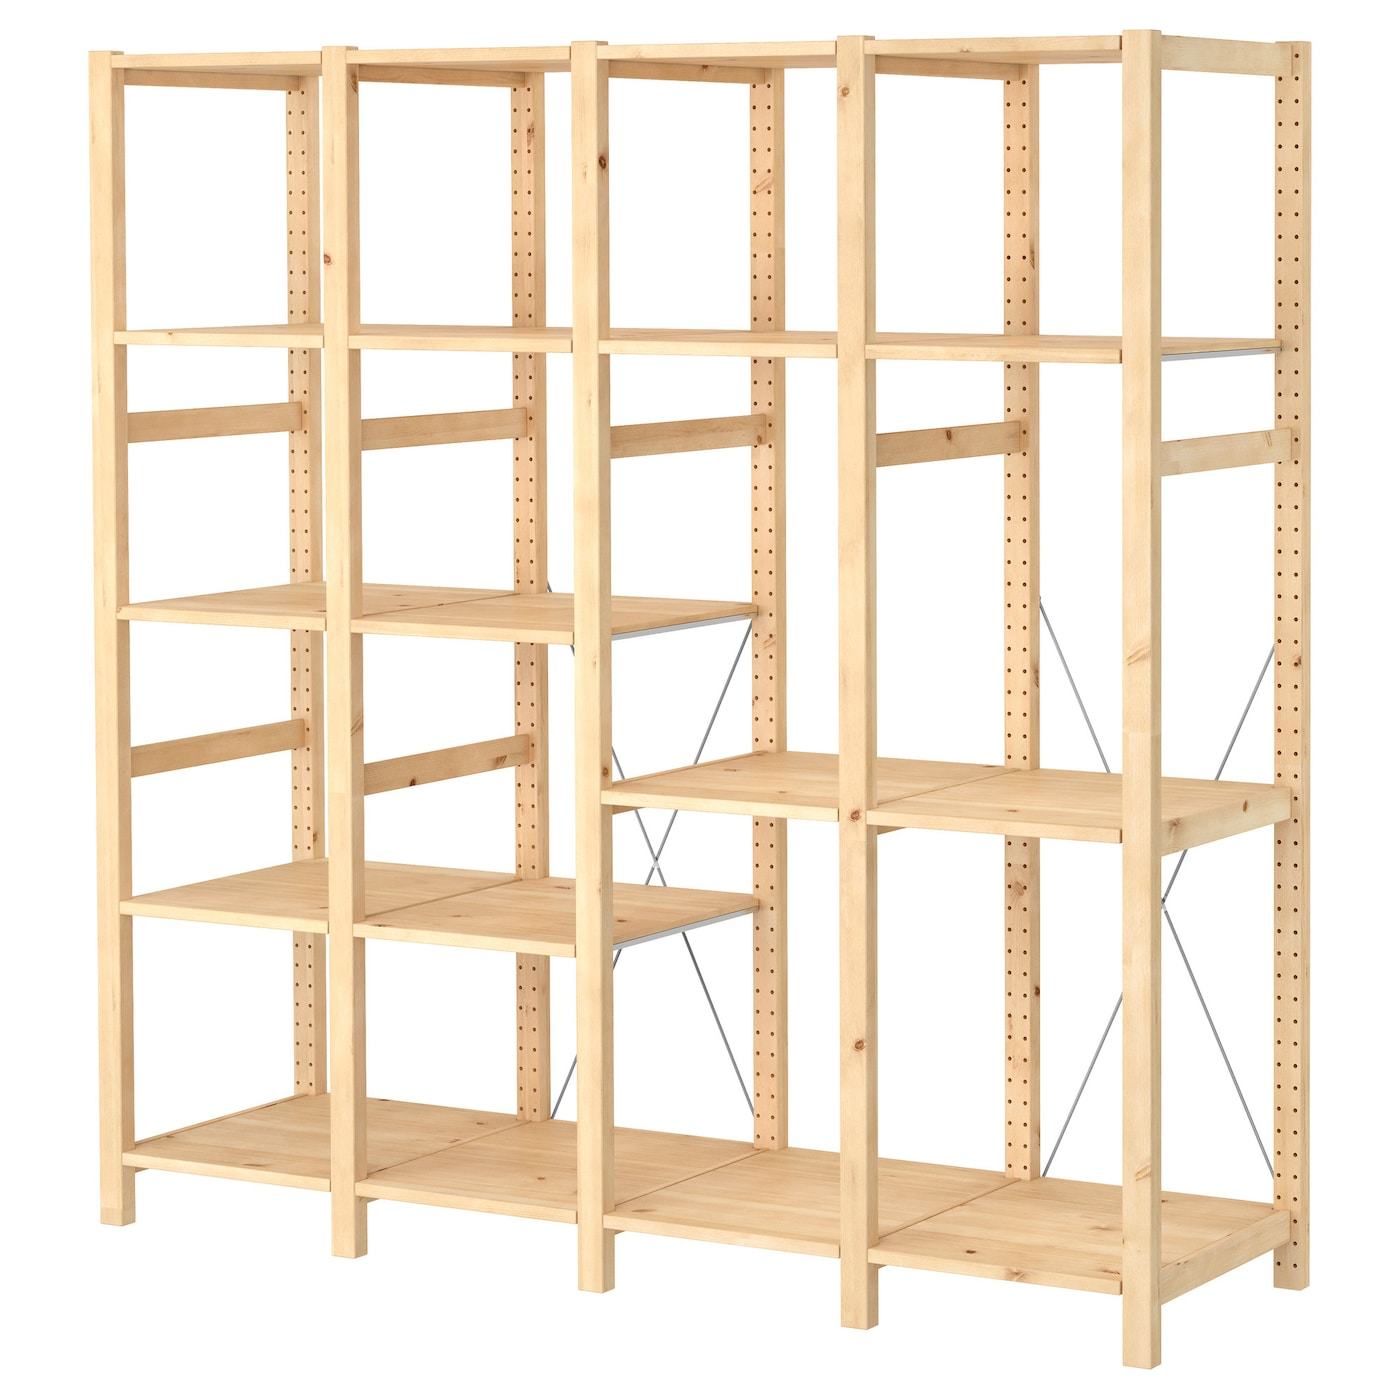 ivar 4 sections shelves pine 179 x 50 x 179 cm ikea. Black Bedroom Furniture Sets. Home Design Ideas